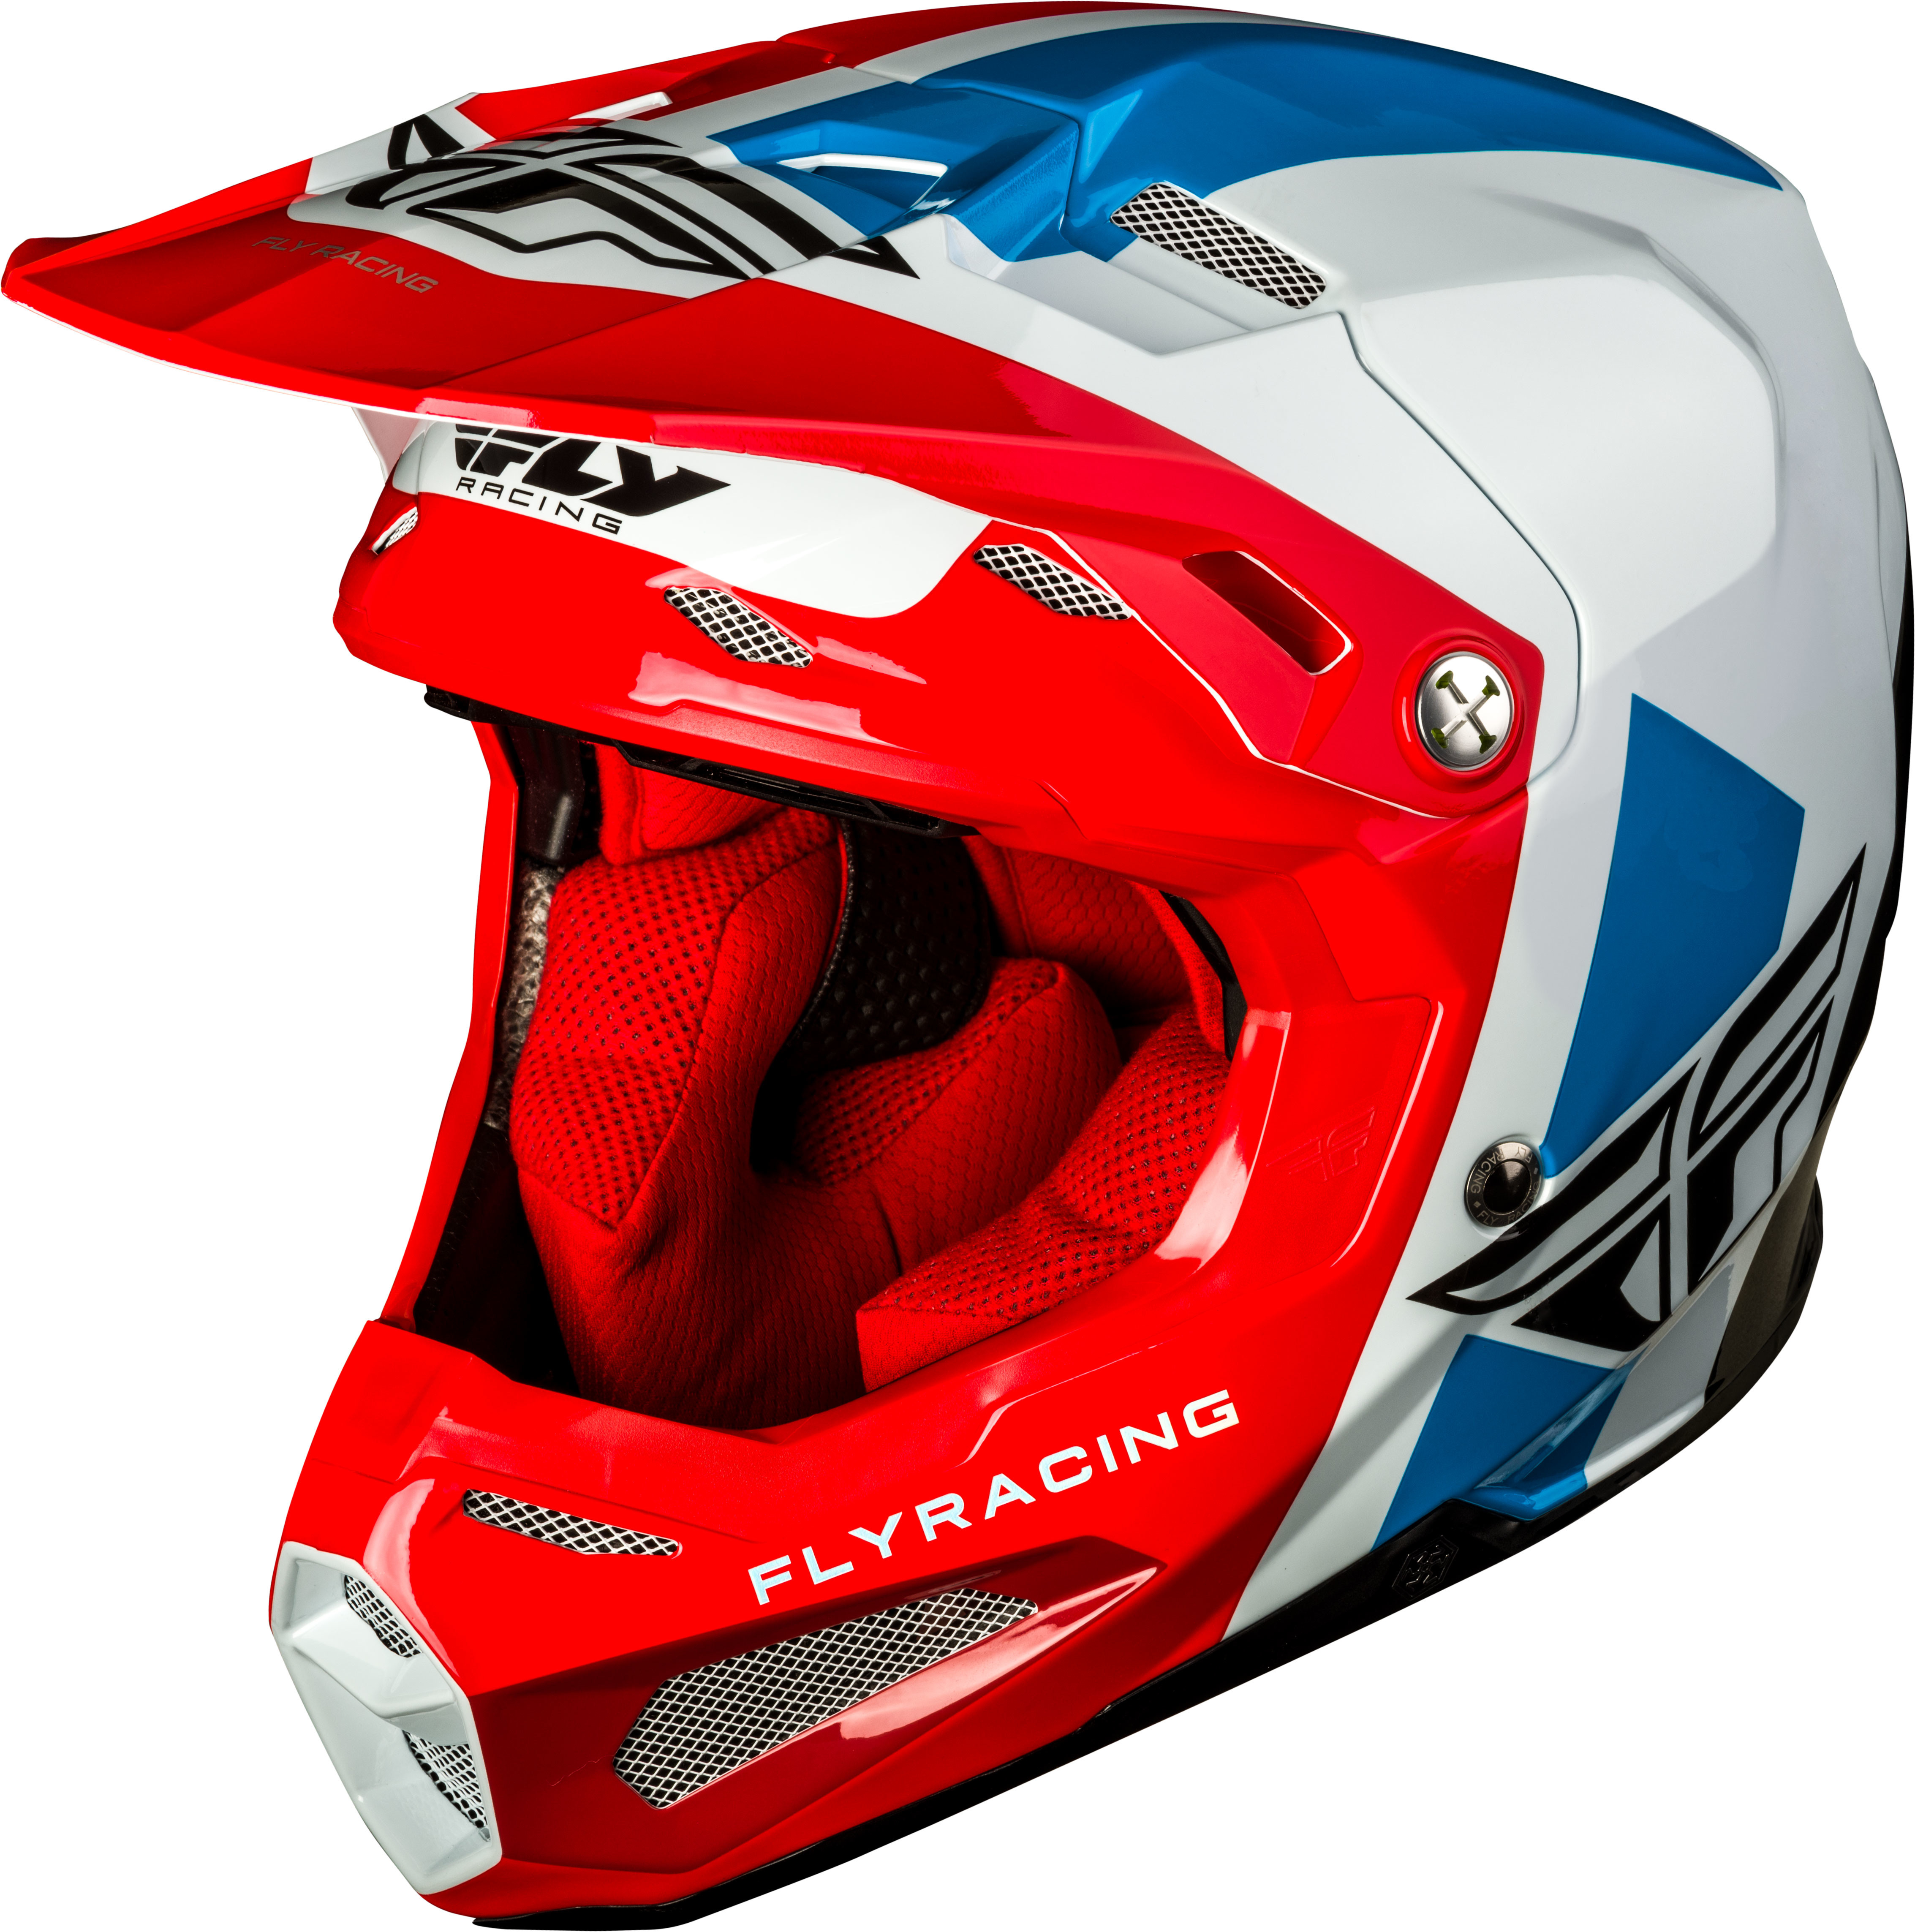 FORMULA ORIGIN Helmet Red White Blue,  Md  73-4402M